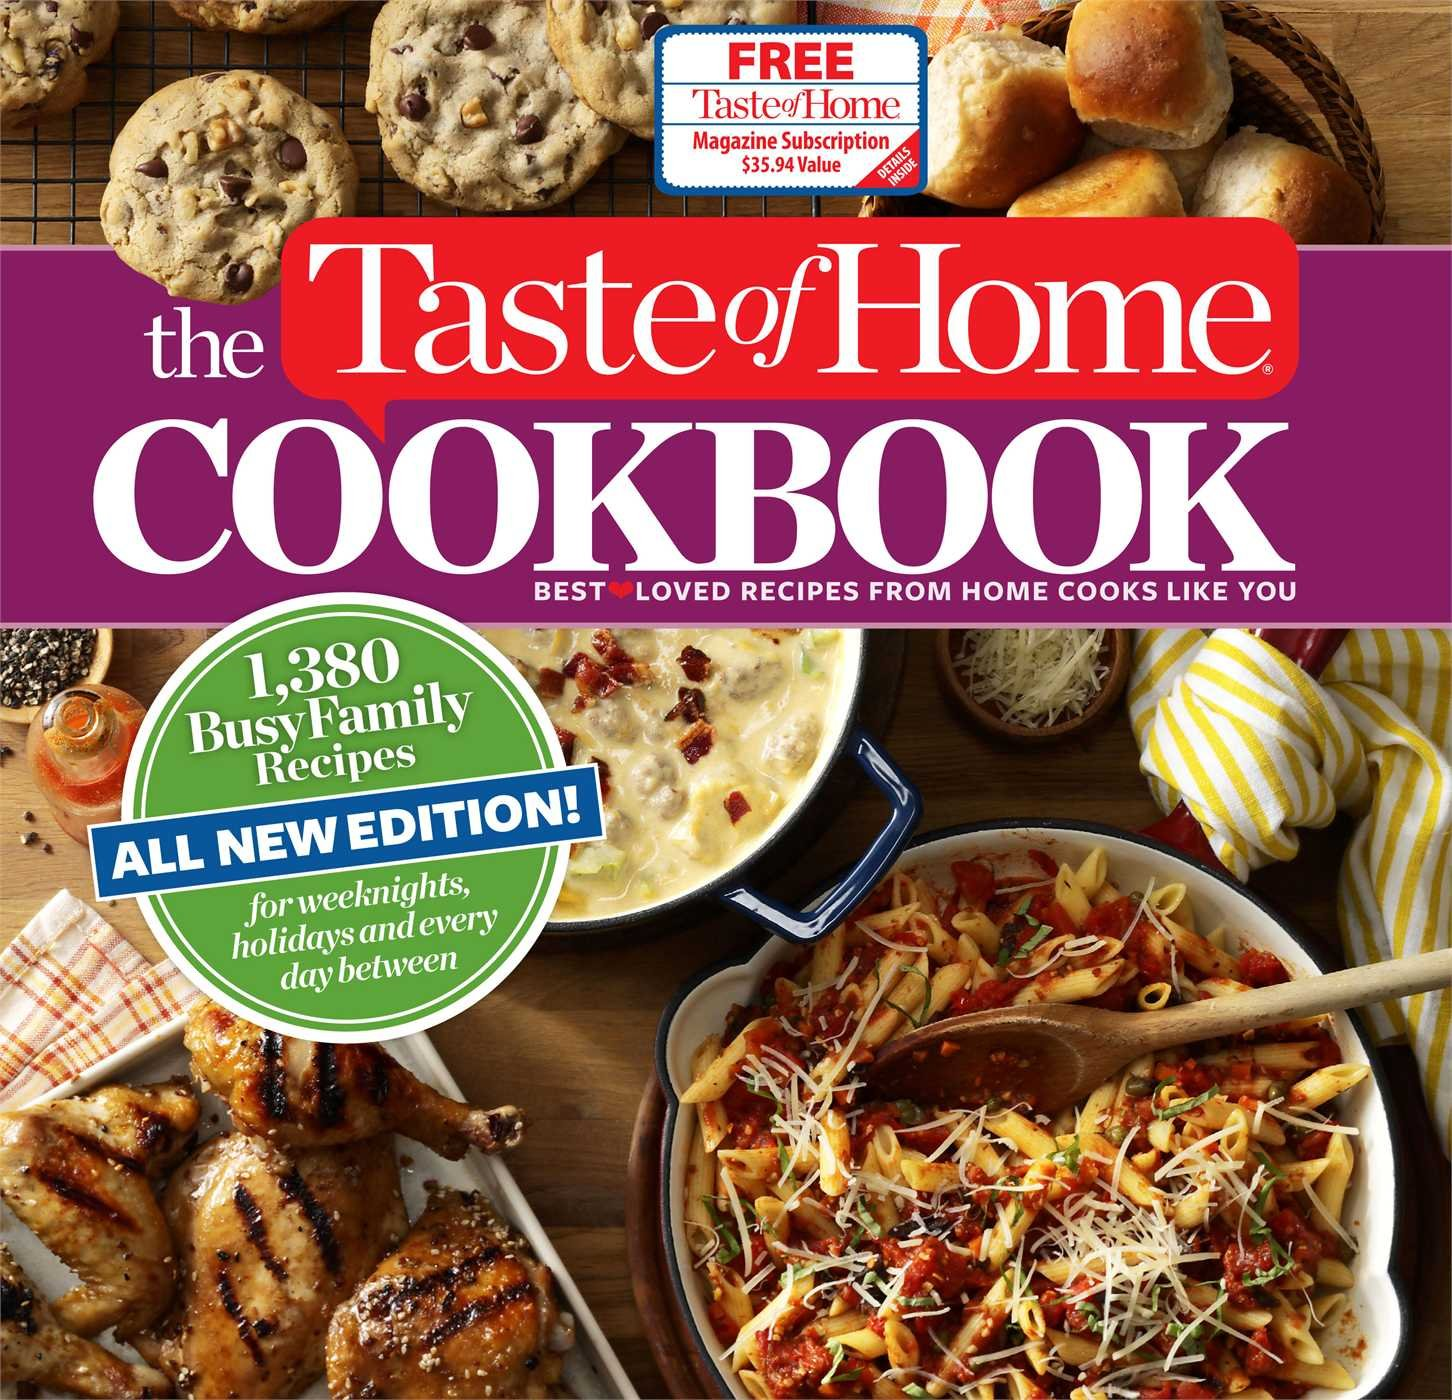 The Taste of Home Cookbook, 4th Edition: 1, 380 Busy Family Recipes for  Weeknights, Holidays and Everyday Between, All New Edition!: